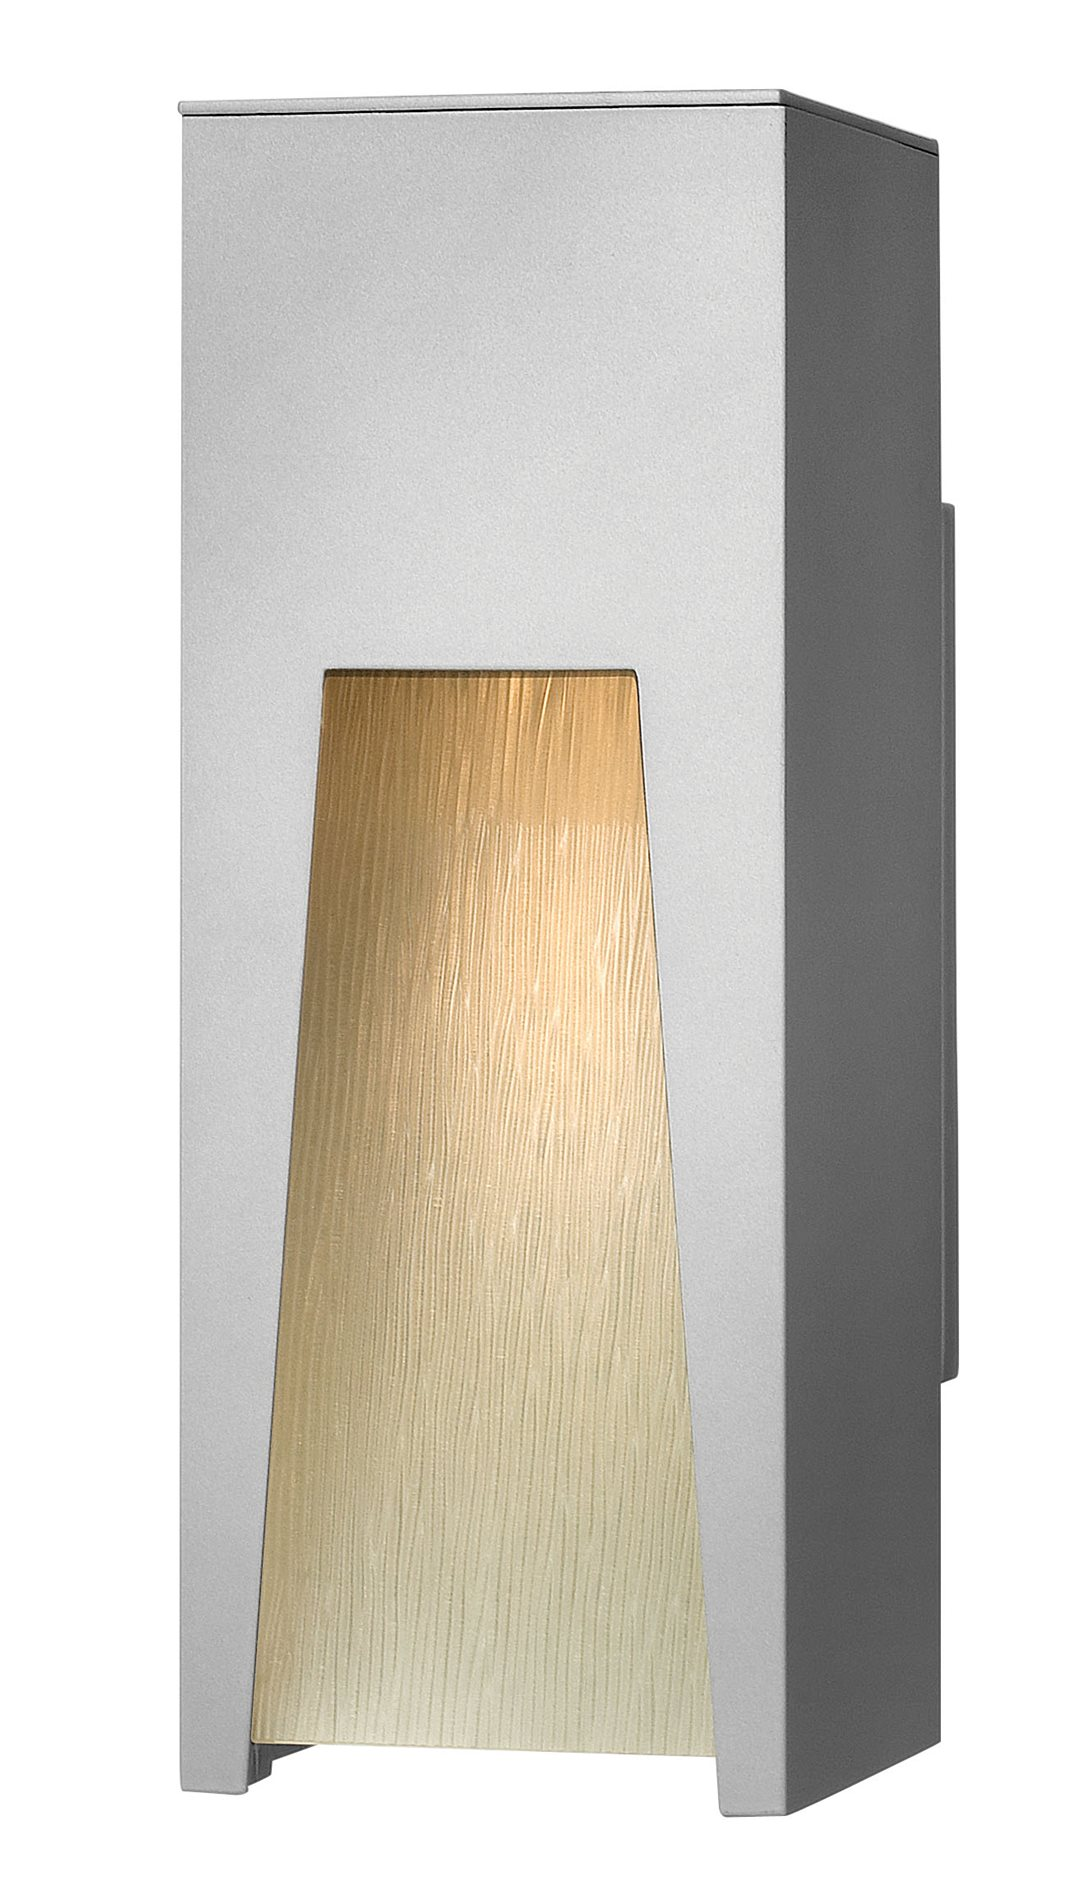 Clearance Exterior Wall Lights : [Clearance] Kube Modern / Contemporary Outdoor Wall Sconce - XKH-TT-0671